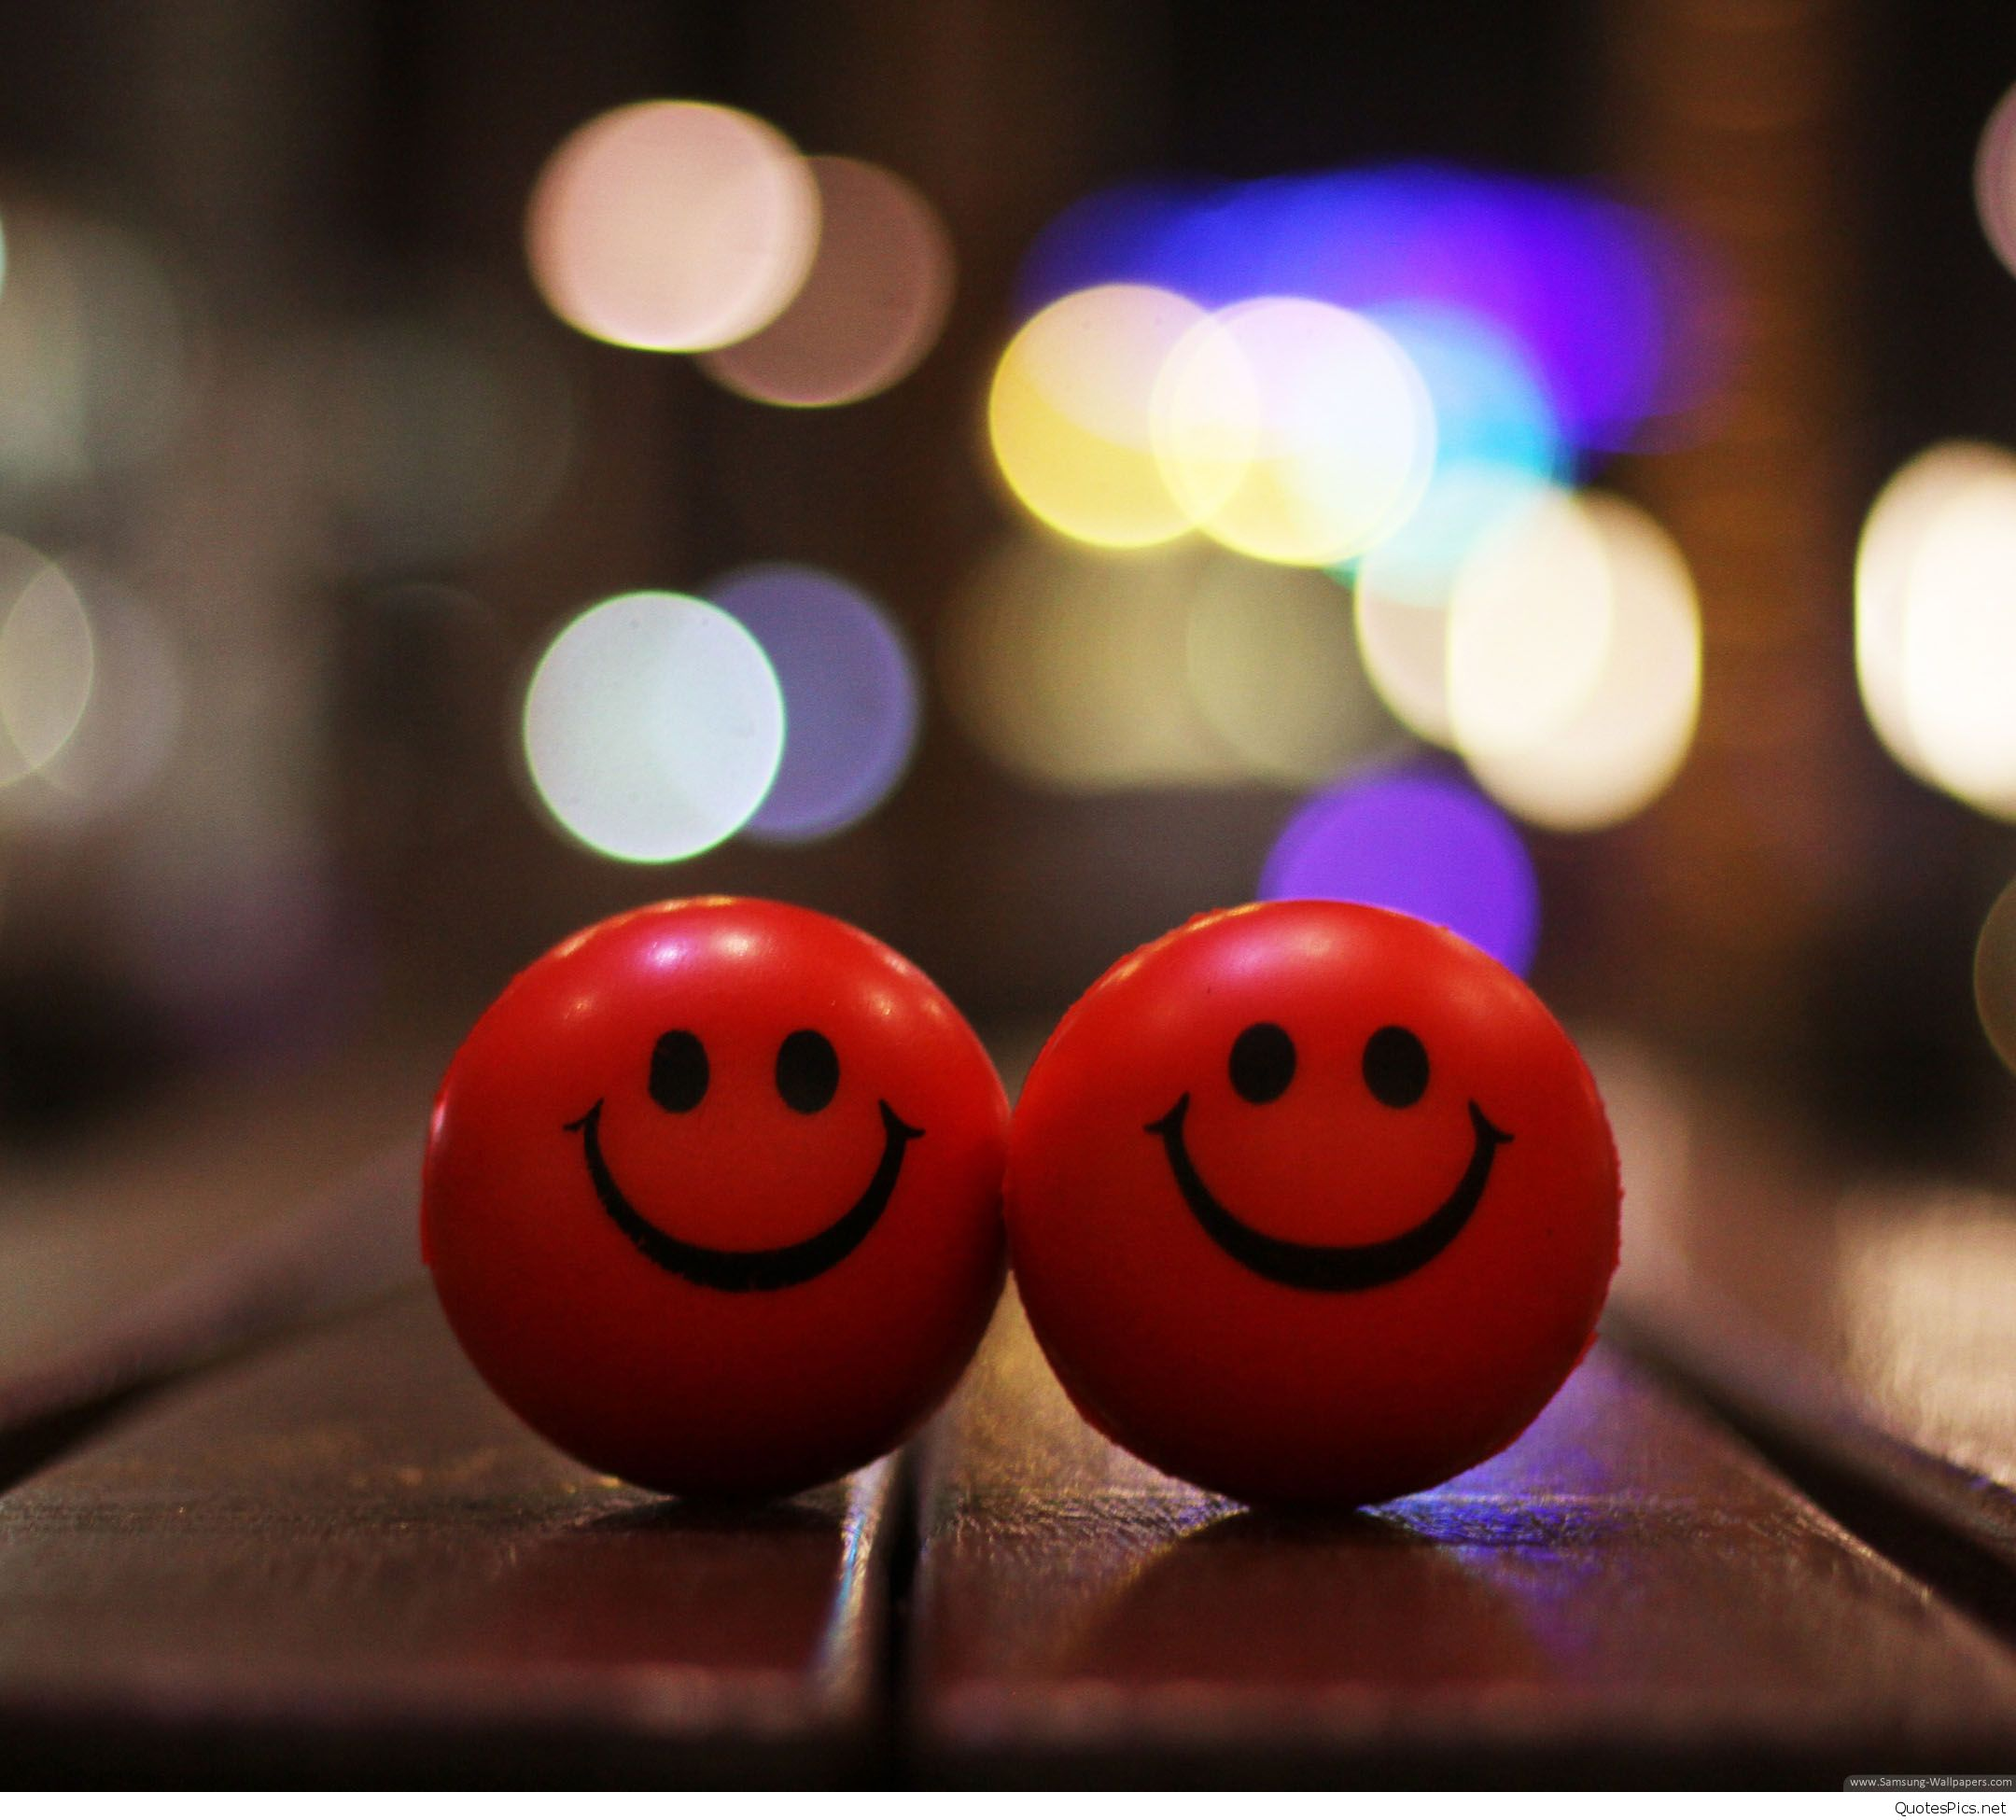 Love smileys